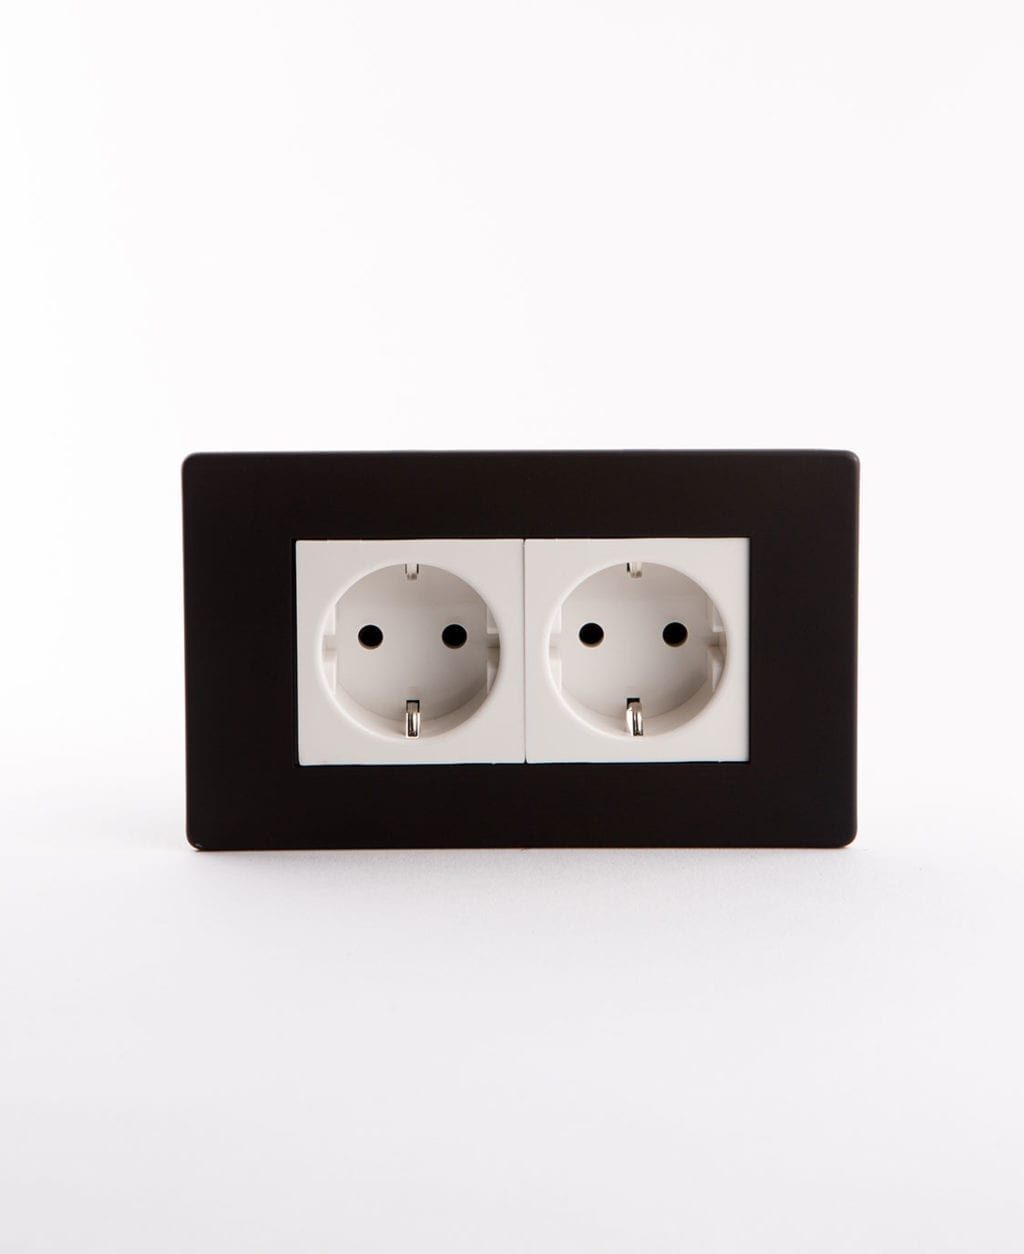 Double black Schuko socket with white inserts